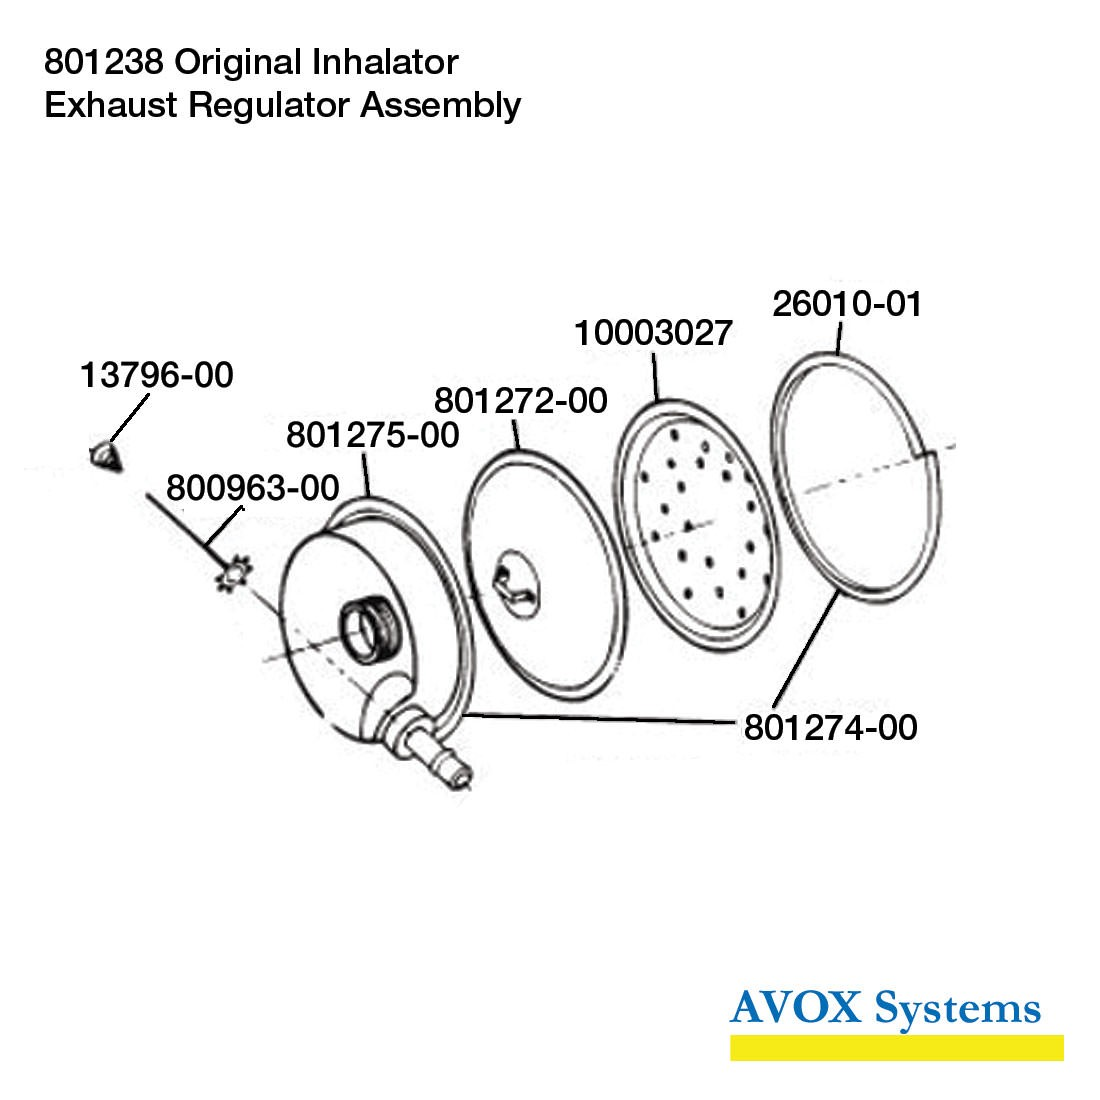 Avox 801238-01 Original Inhalator without 1st Stage Regulator Assembly without Microphone Assembly - Exhaust Regulator Assembly